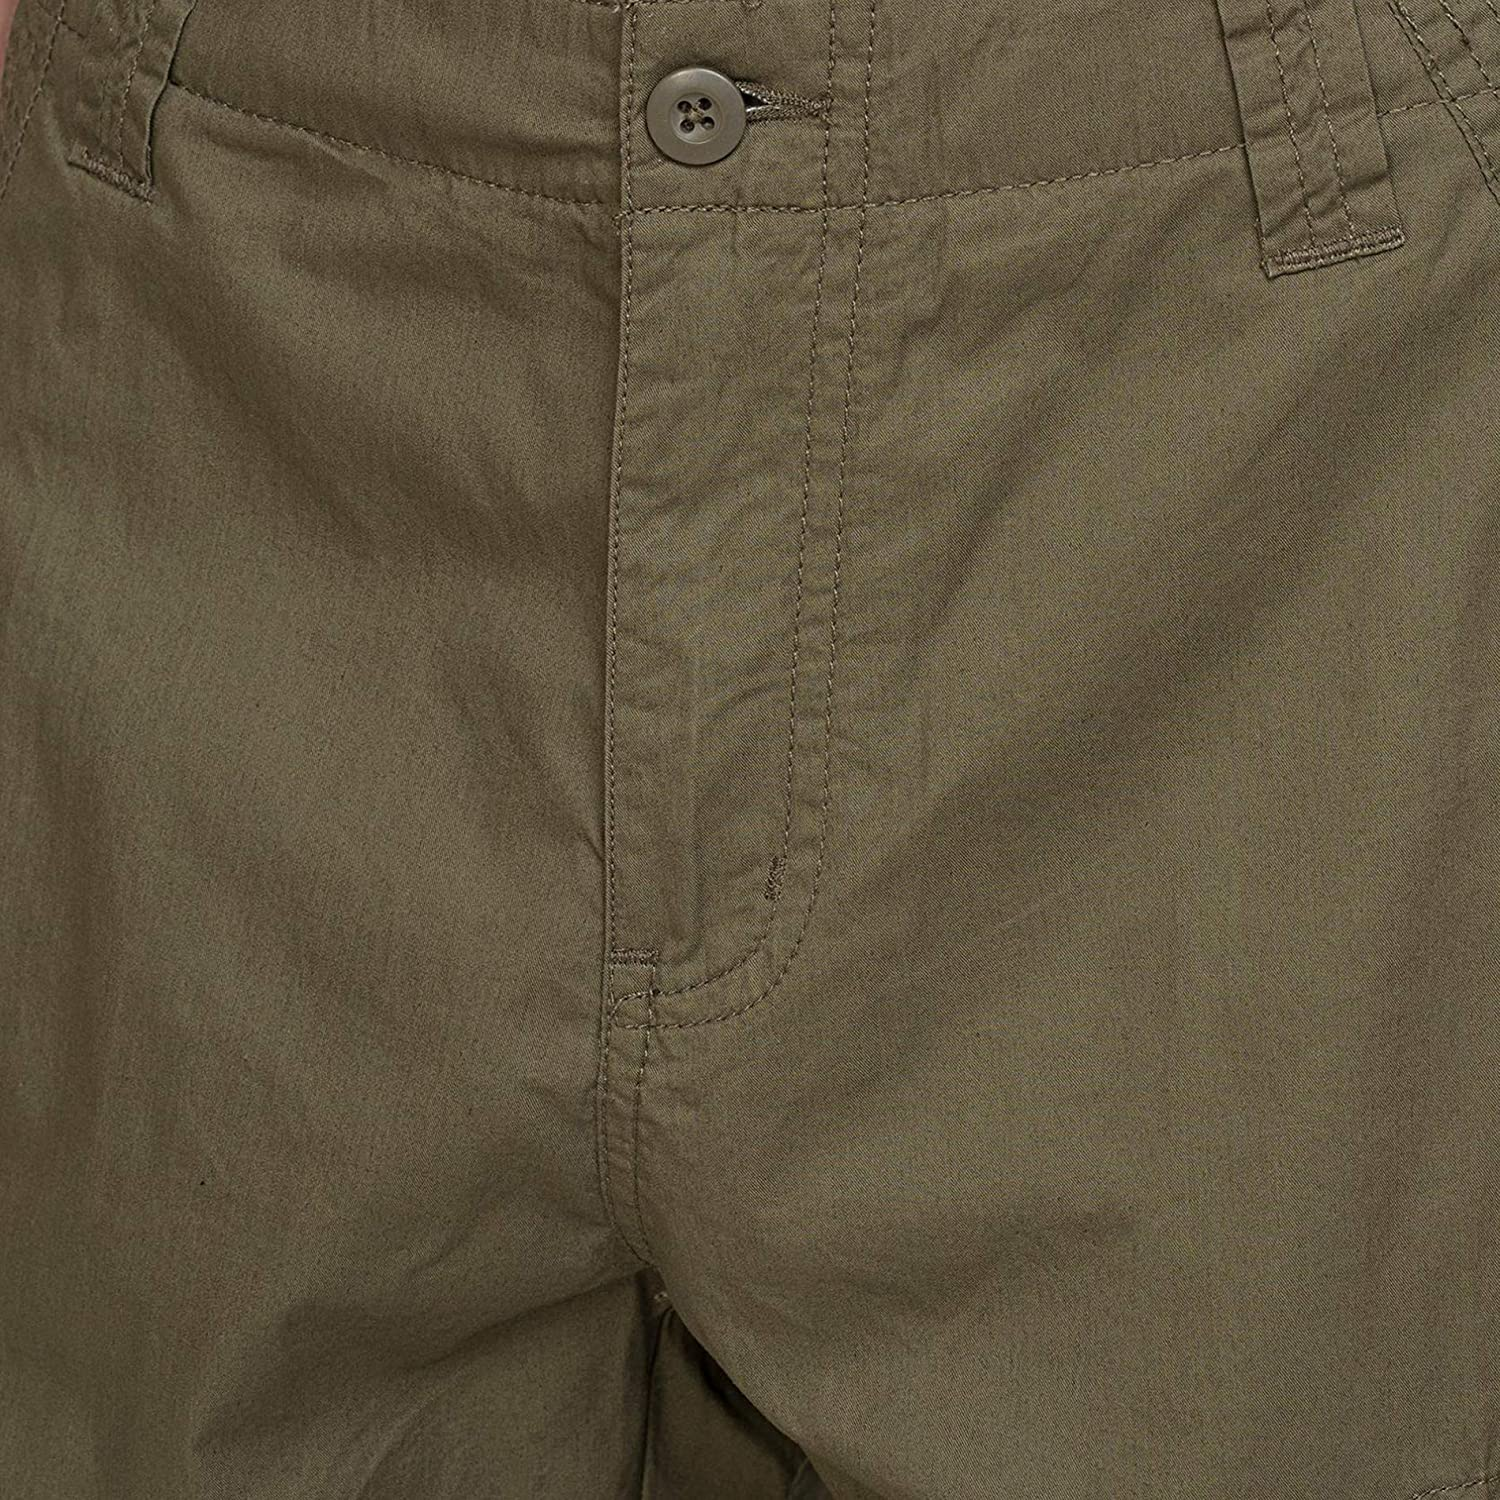 bossini Selection Mens Solid Cargo Shorts 36 Short Sleeve Solid Polo Shirt L,US Size40 Light Blue Waist 37-38